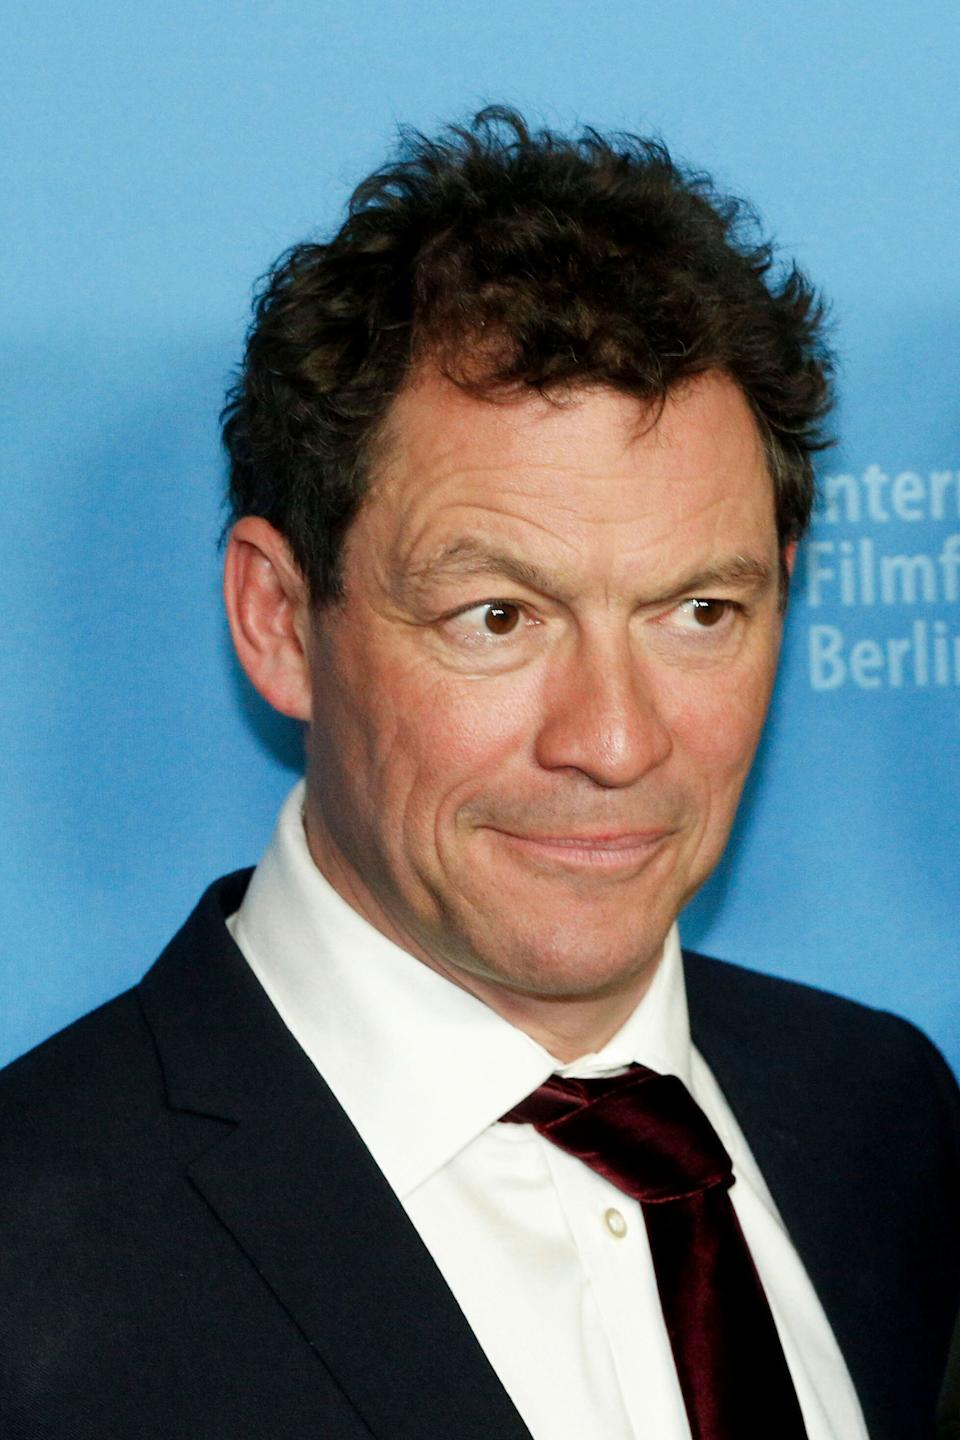 Dominic West (Photo: Isa Foltin via Getty Images)